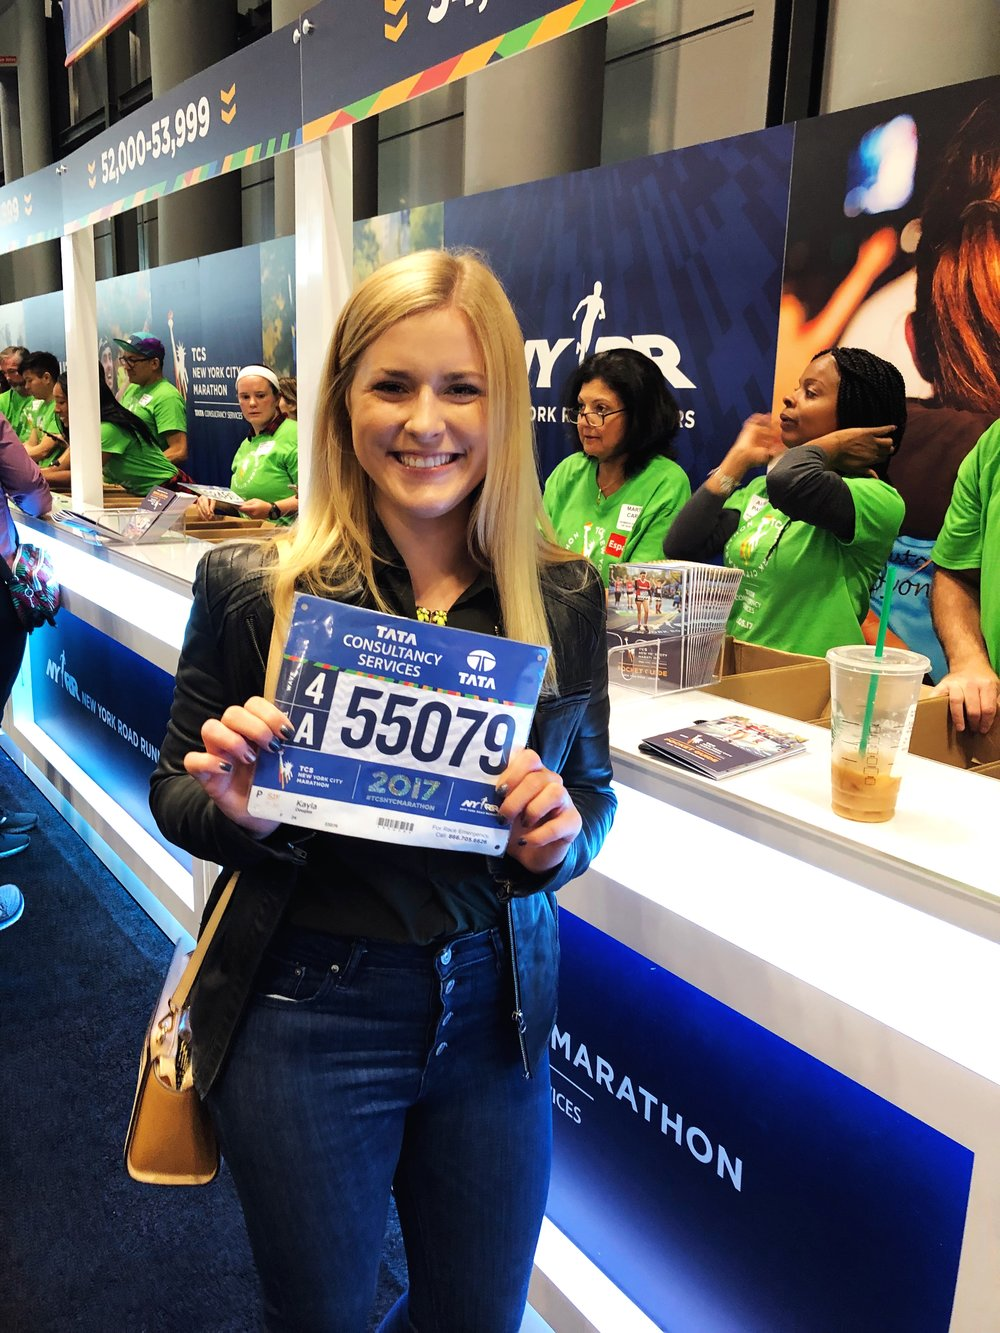 nyc marathon expo - every runner has to pick up their bib at the expo, held at the Javits